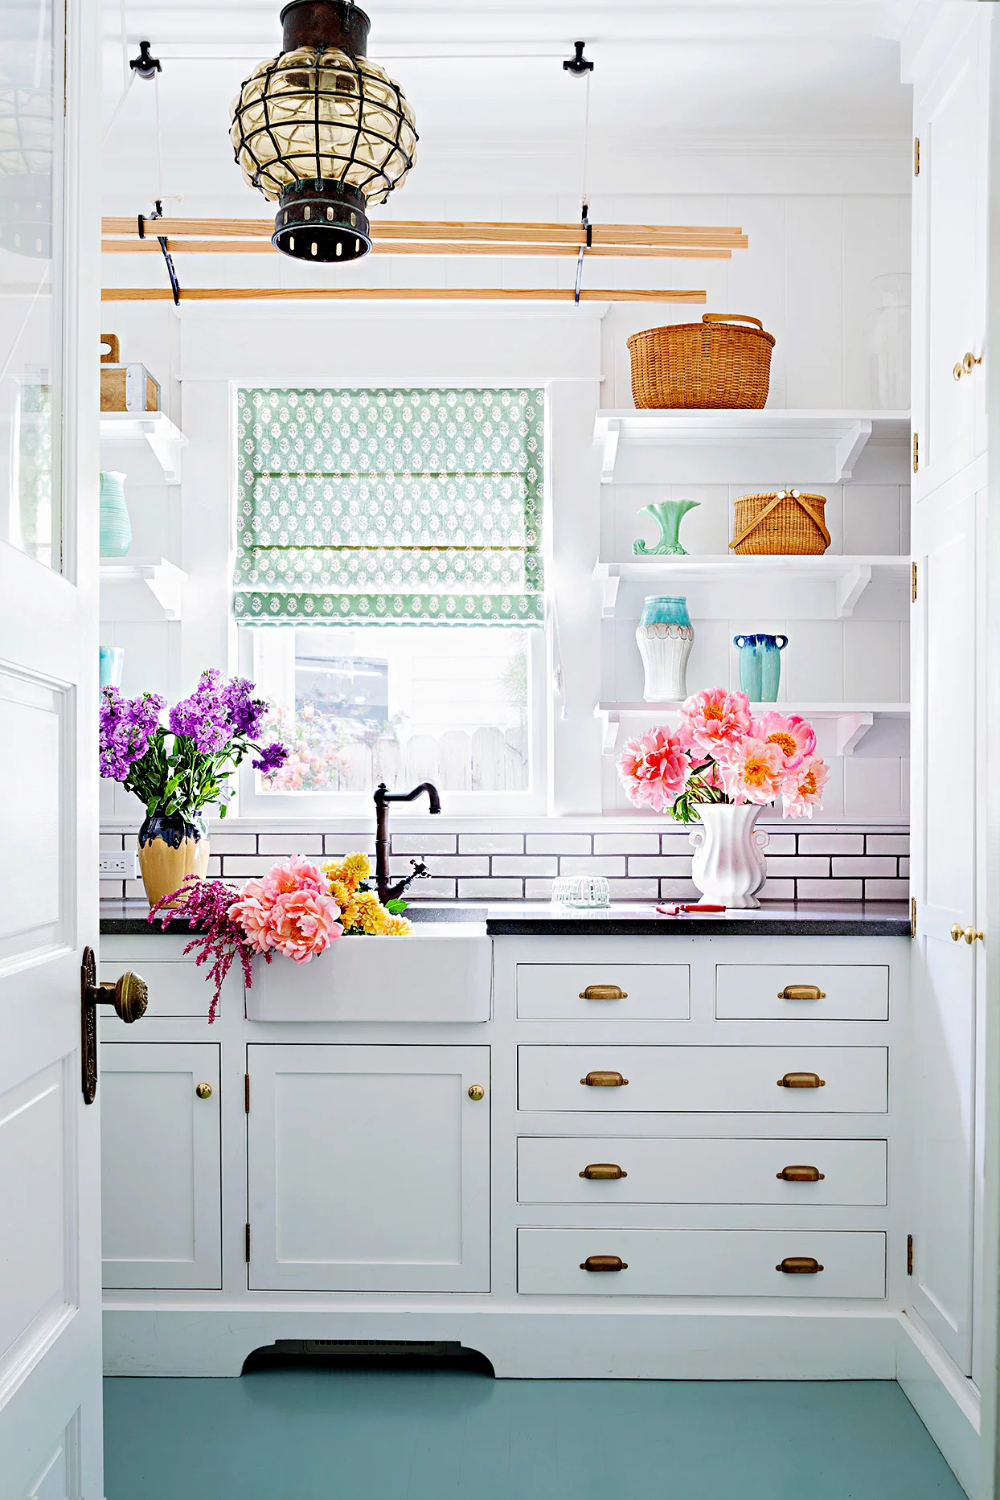 25 Easy Weekend Projects Under 20 in 2020 Home